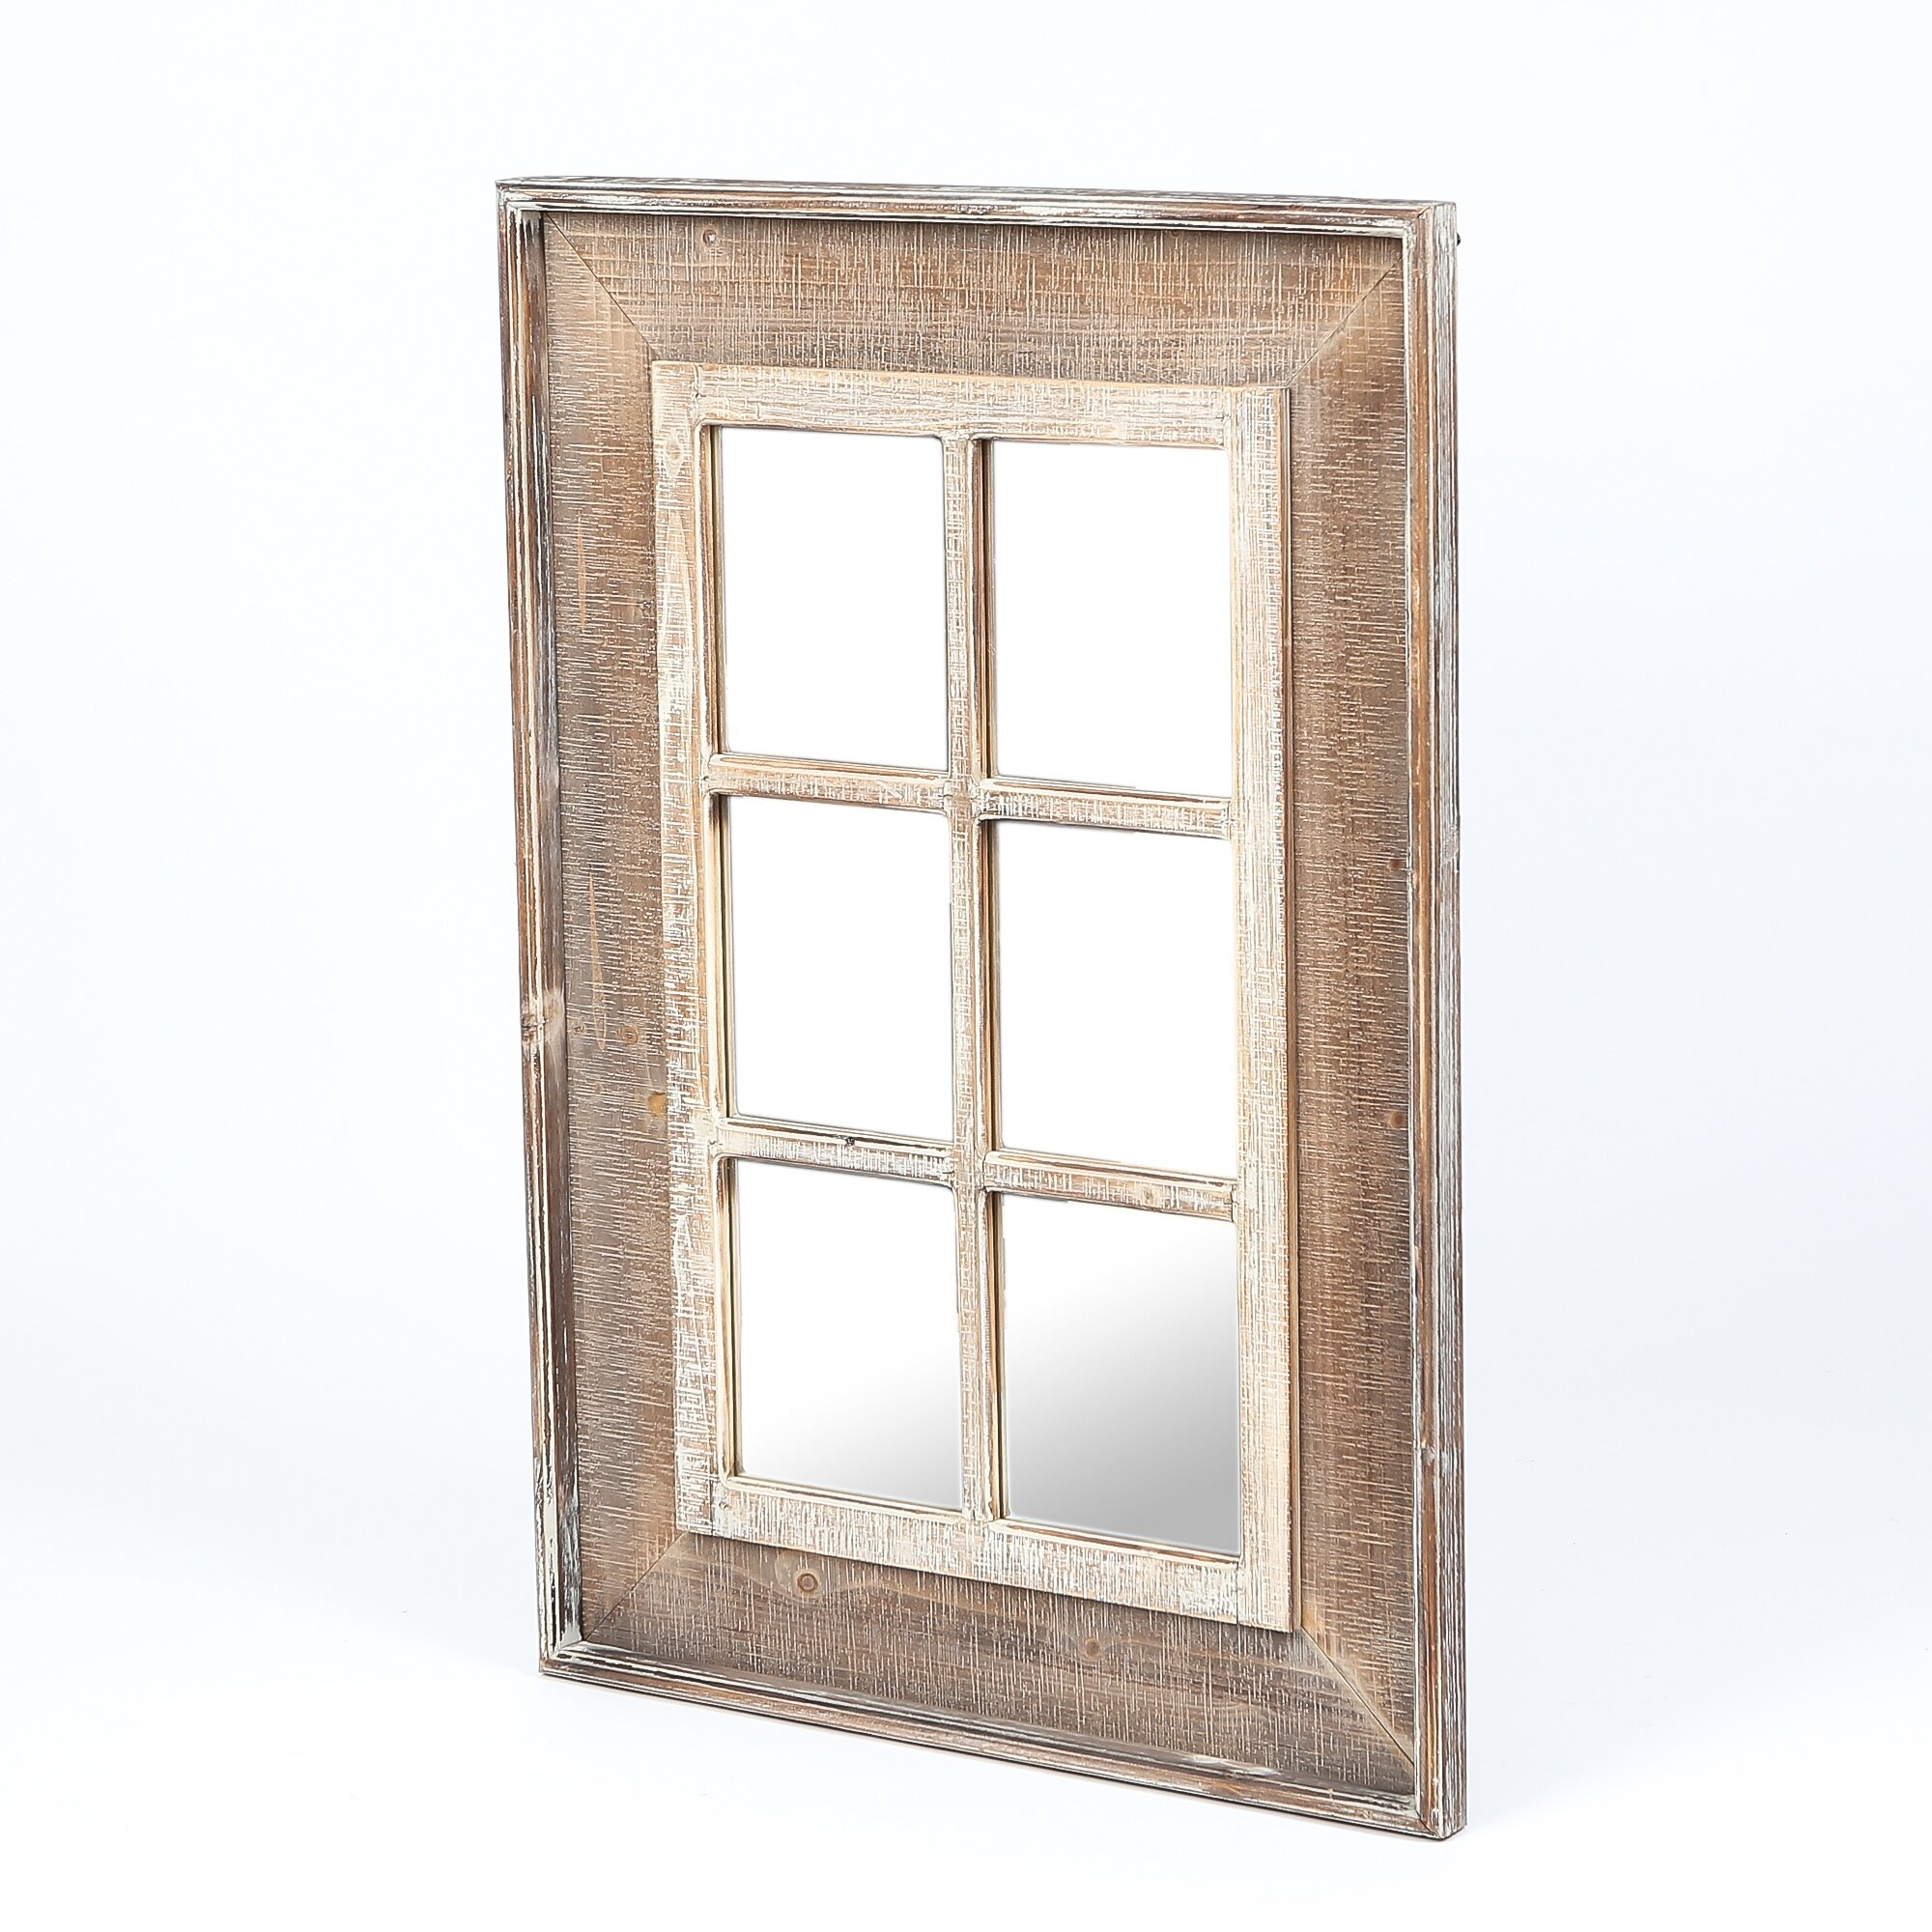 Old Rustic Window Frames | Wayfair regarding Old Rustic Barn Window Frame (Image 14 of 30)